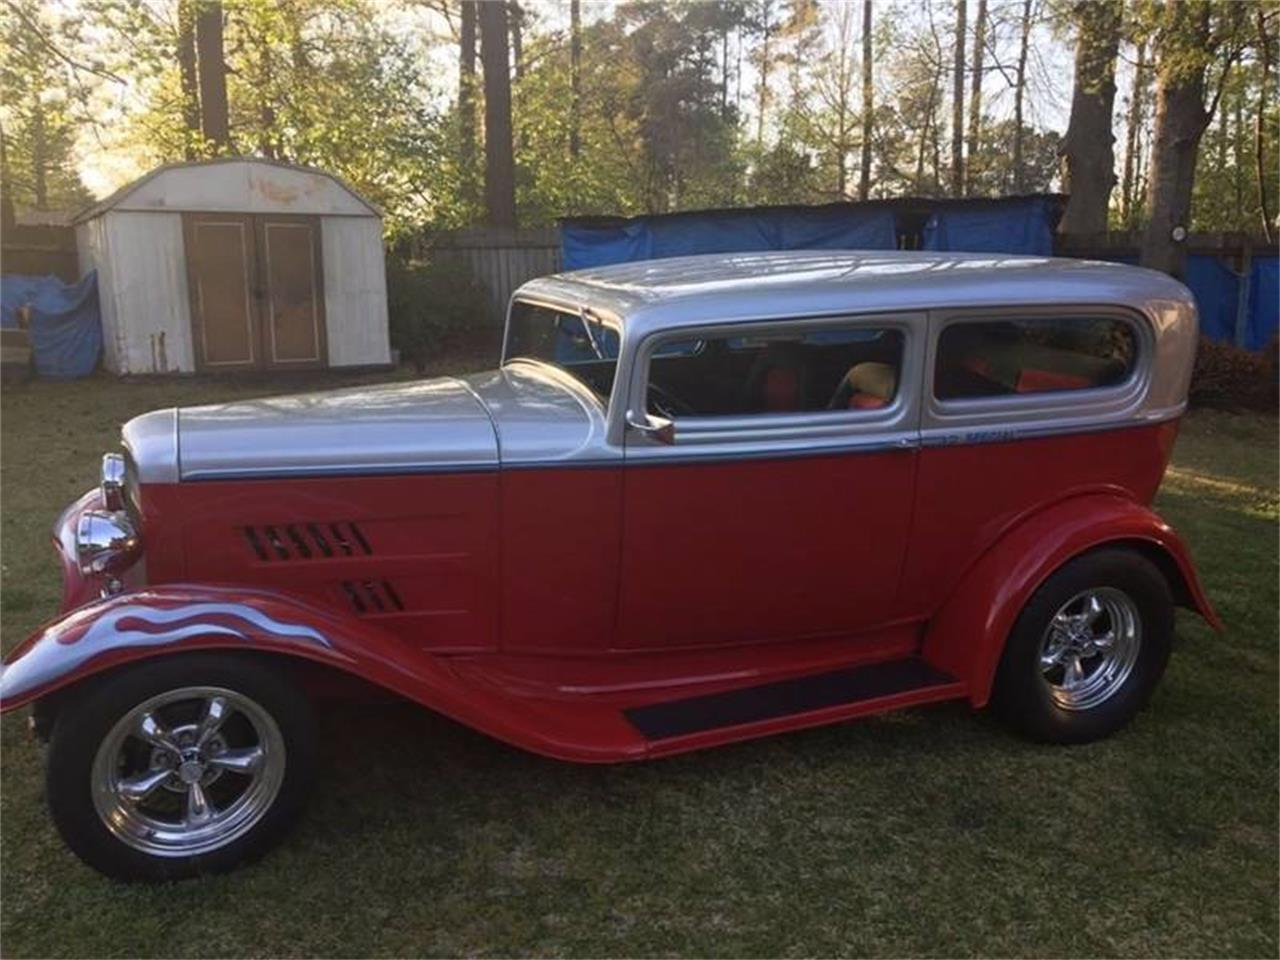 Large Picture of Classic 1932 Ford Coupe located in Georgia - $34,000.00 Offered by Select Classic Cars - LHAX